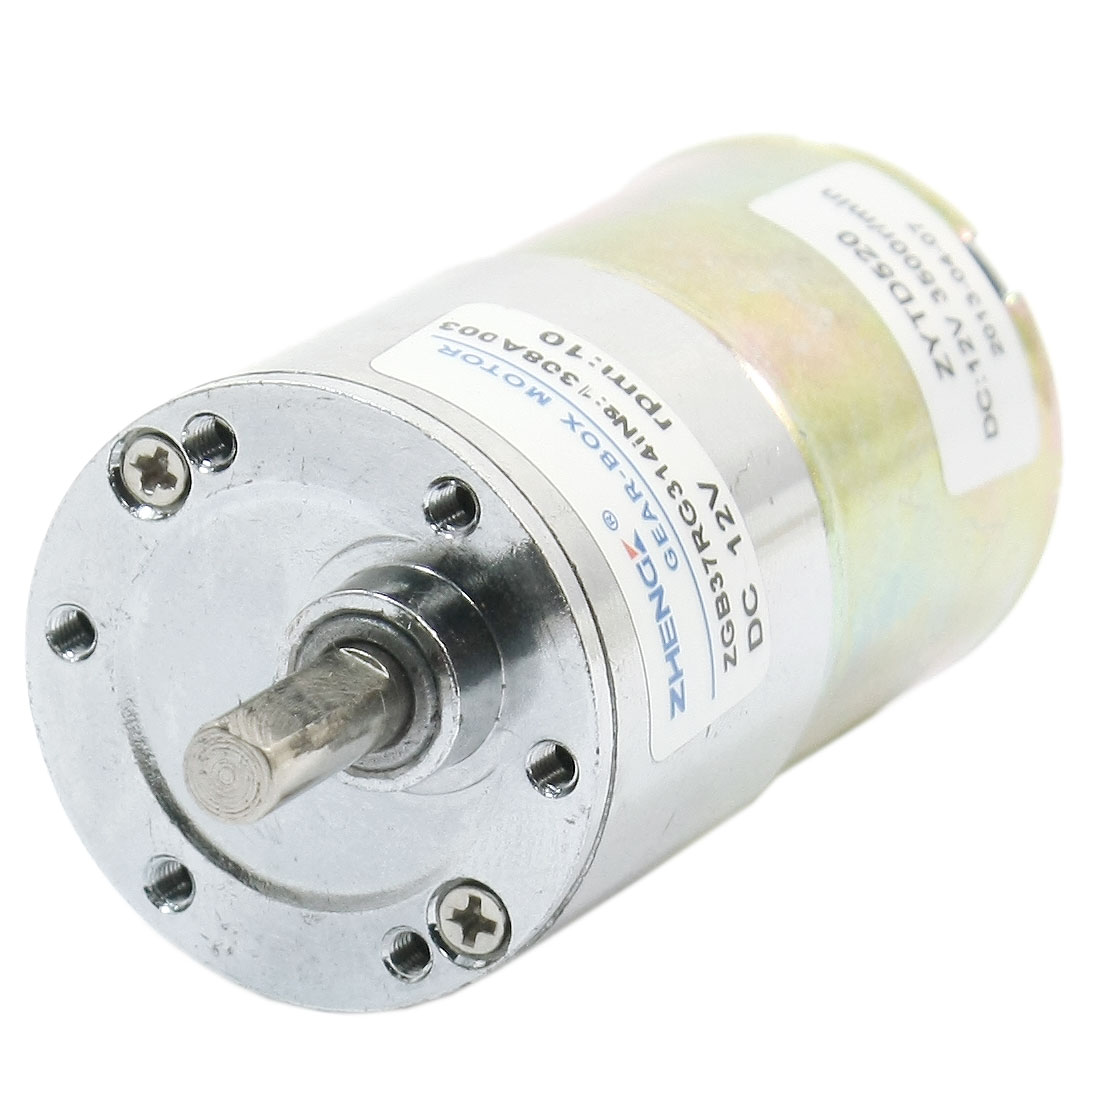 6mm Shaft Dia 10R/Min Output Speed Geared Box Motor DC 12V